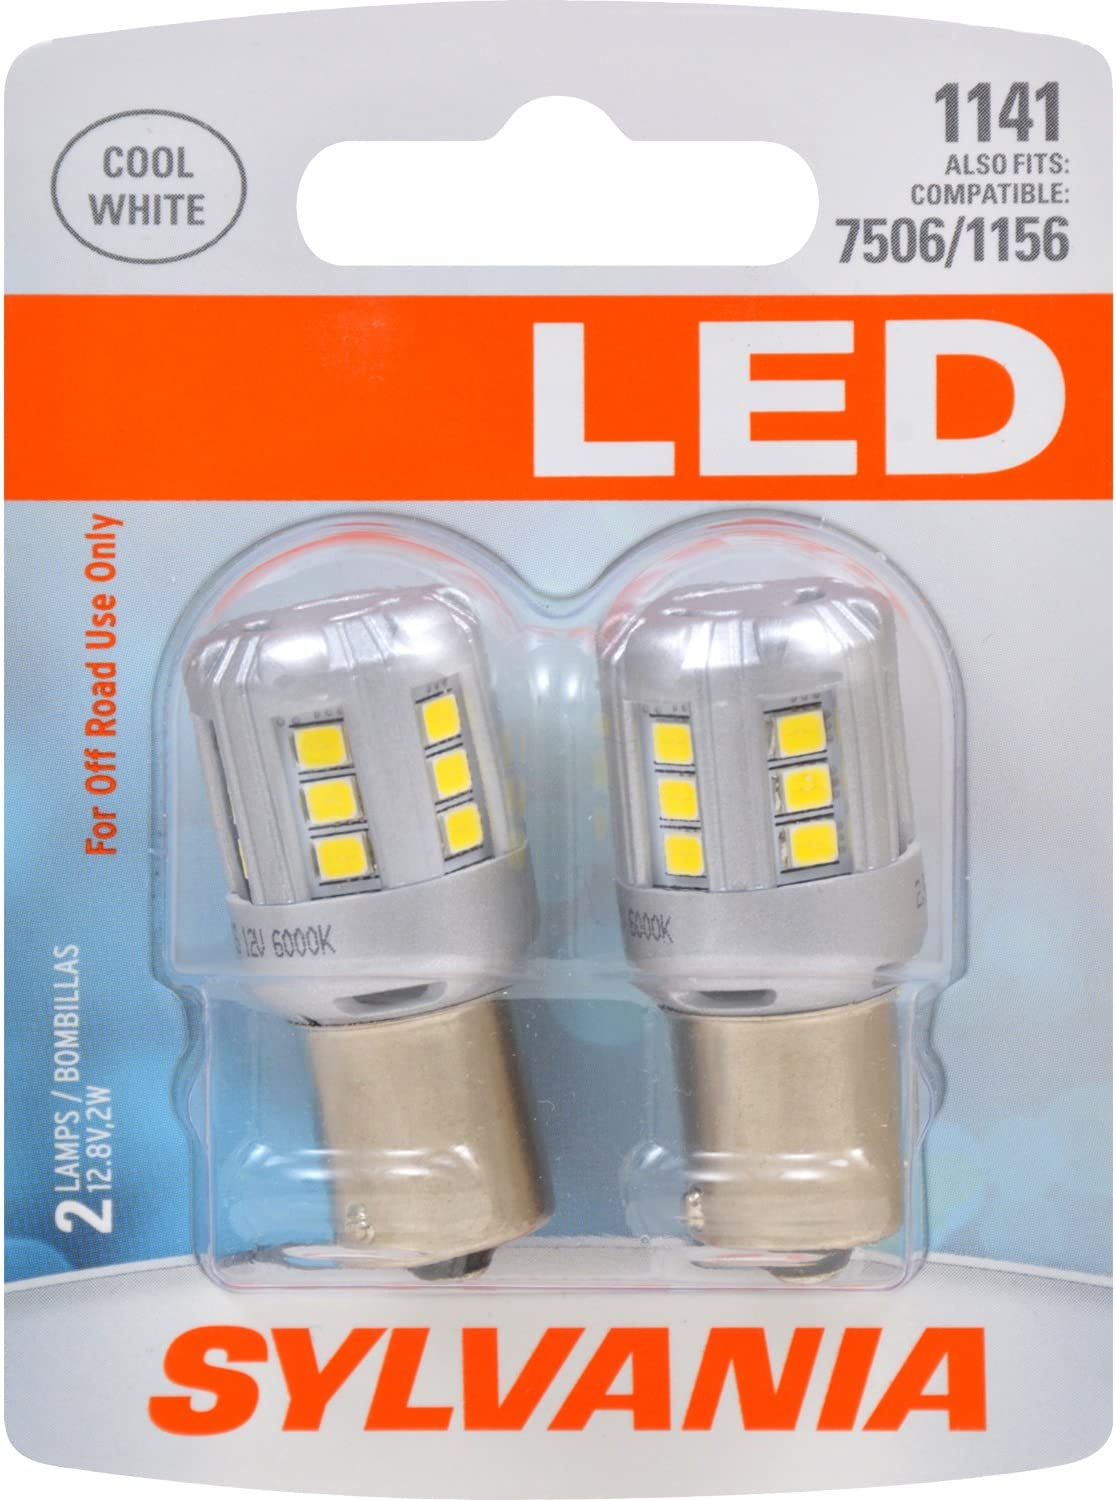 1141 Long Life Miniature Contains 2 Bulbs DRL SYLVANIA Ideal for Daytime Running Lights Bulb and Back-Up//Reverse Lights